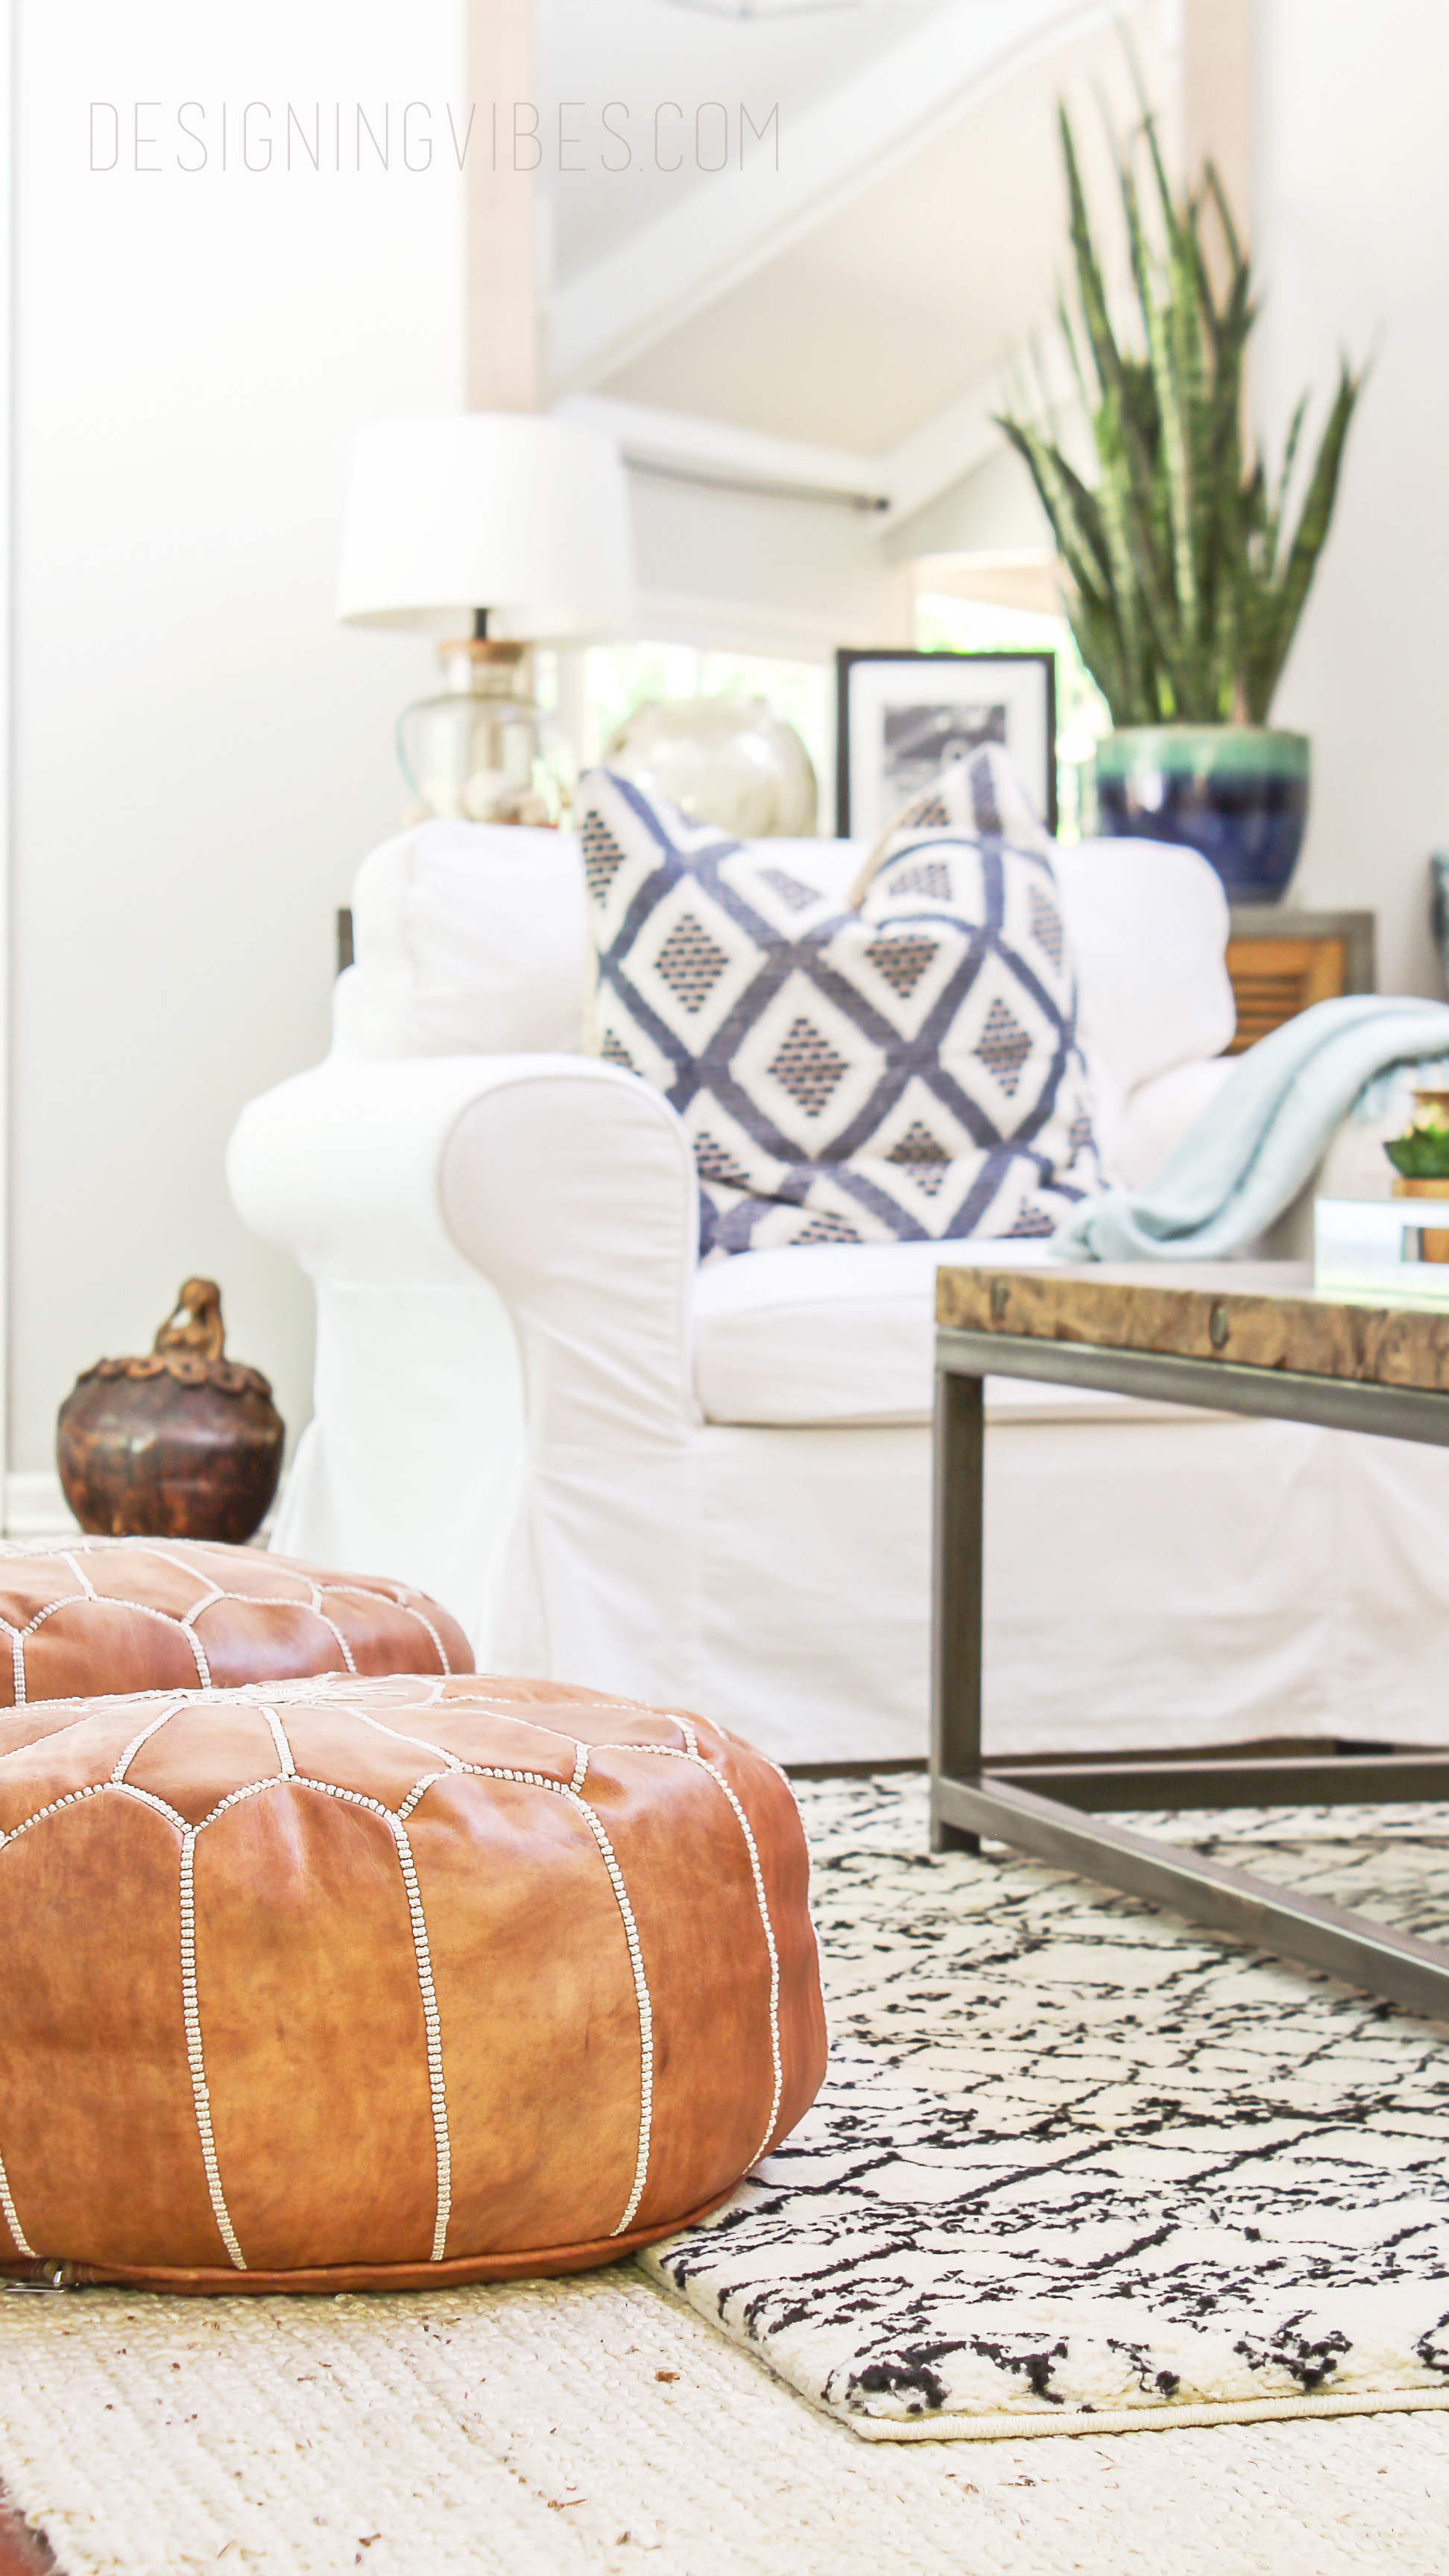 How to Buy Leather Moroccan Poufs on the Cheap- Boho Leather Ottomans